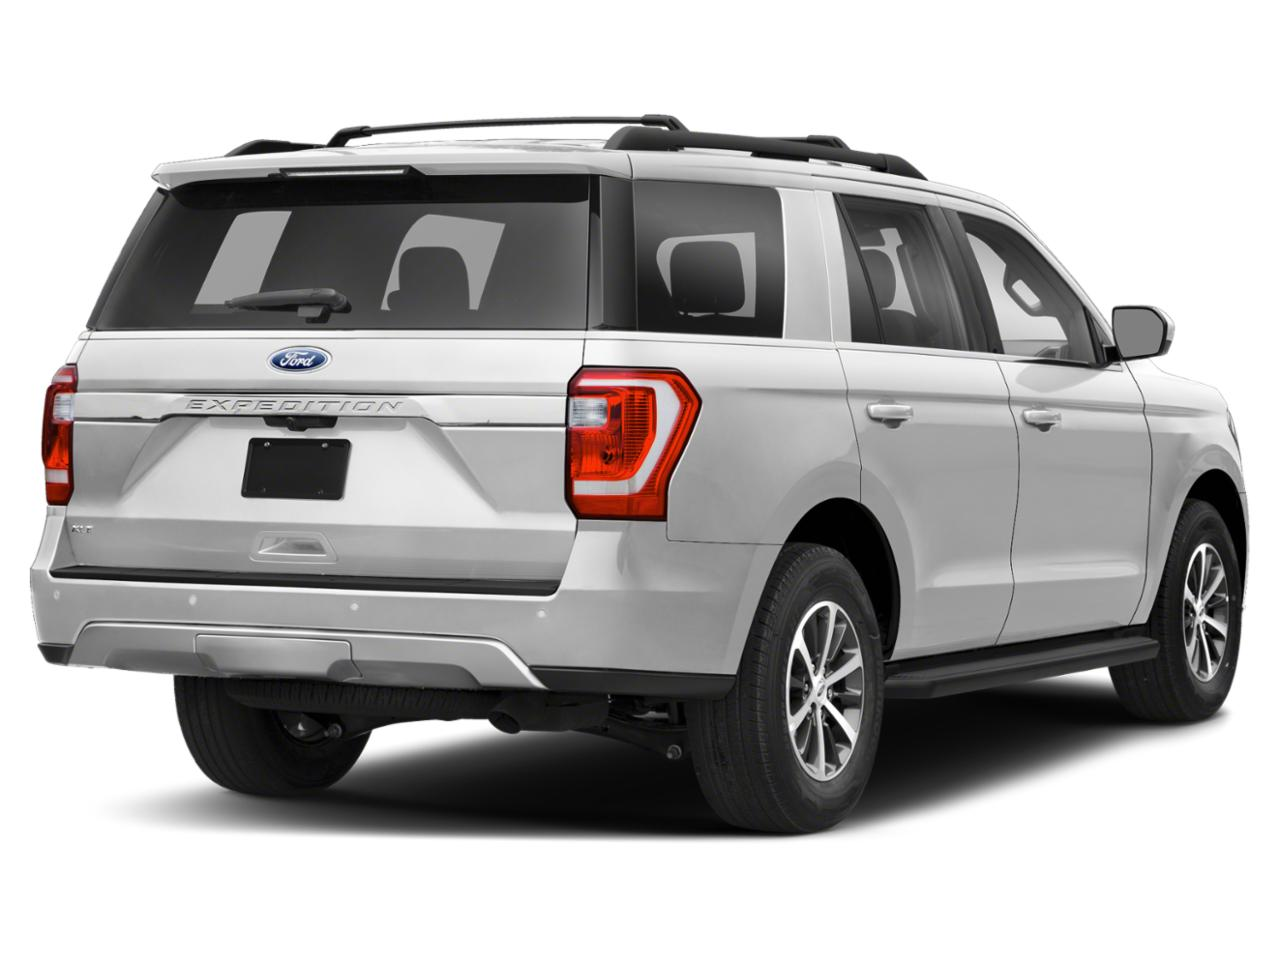 2020 Ford Expedition LIMITED SUV Slide